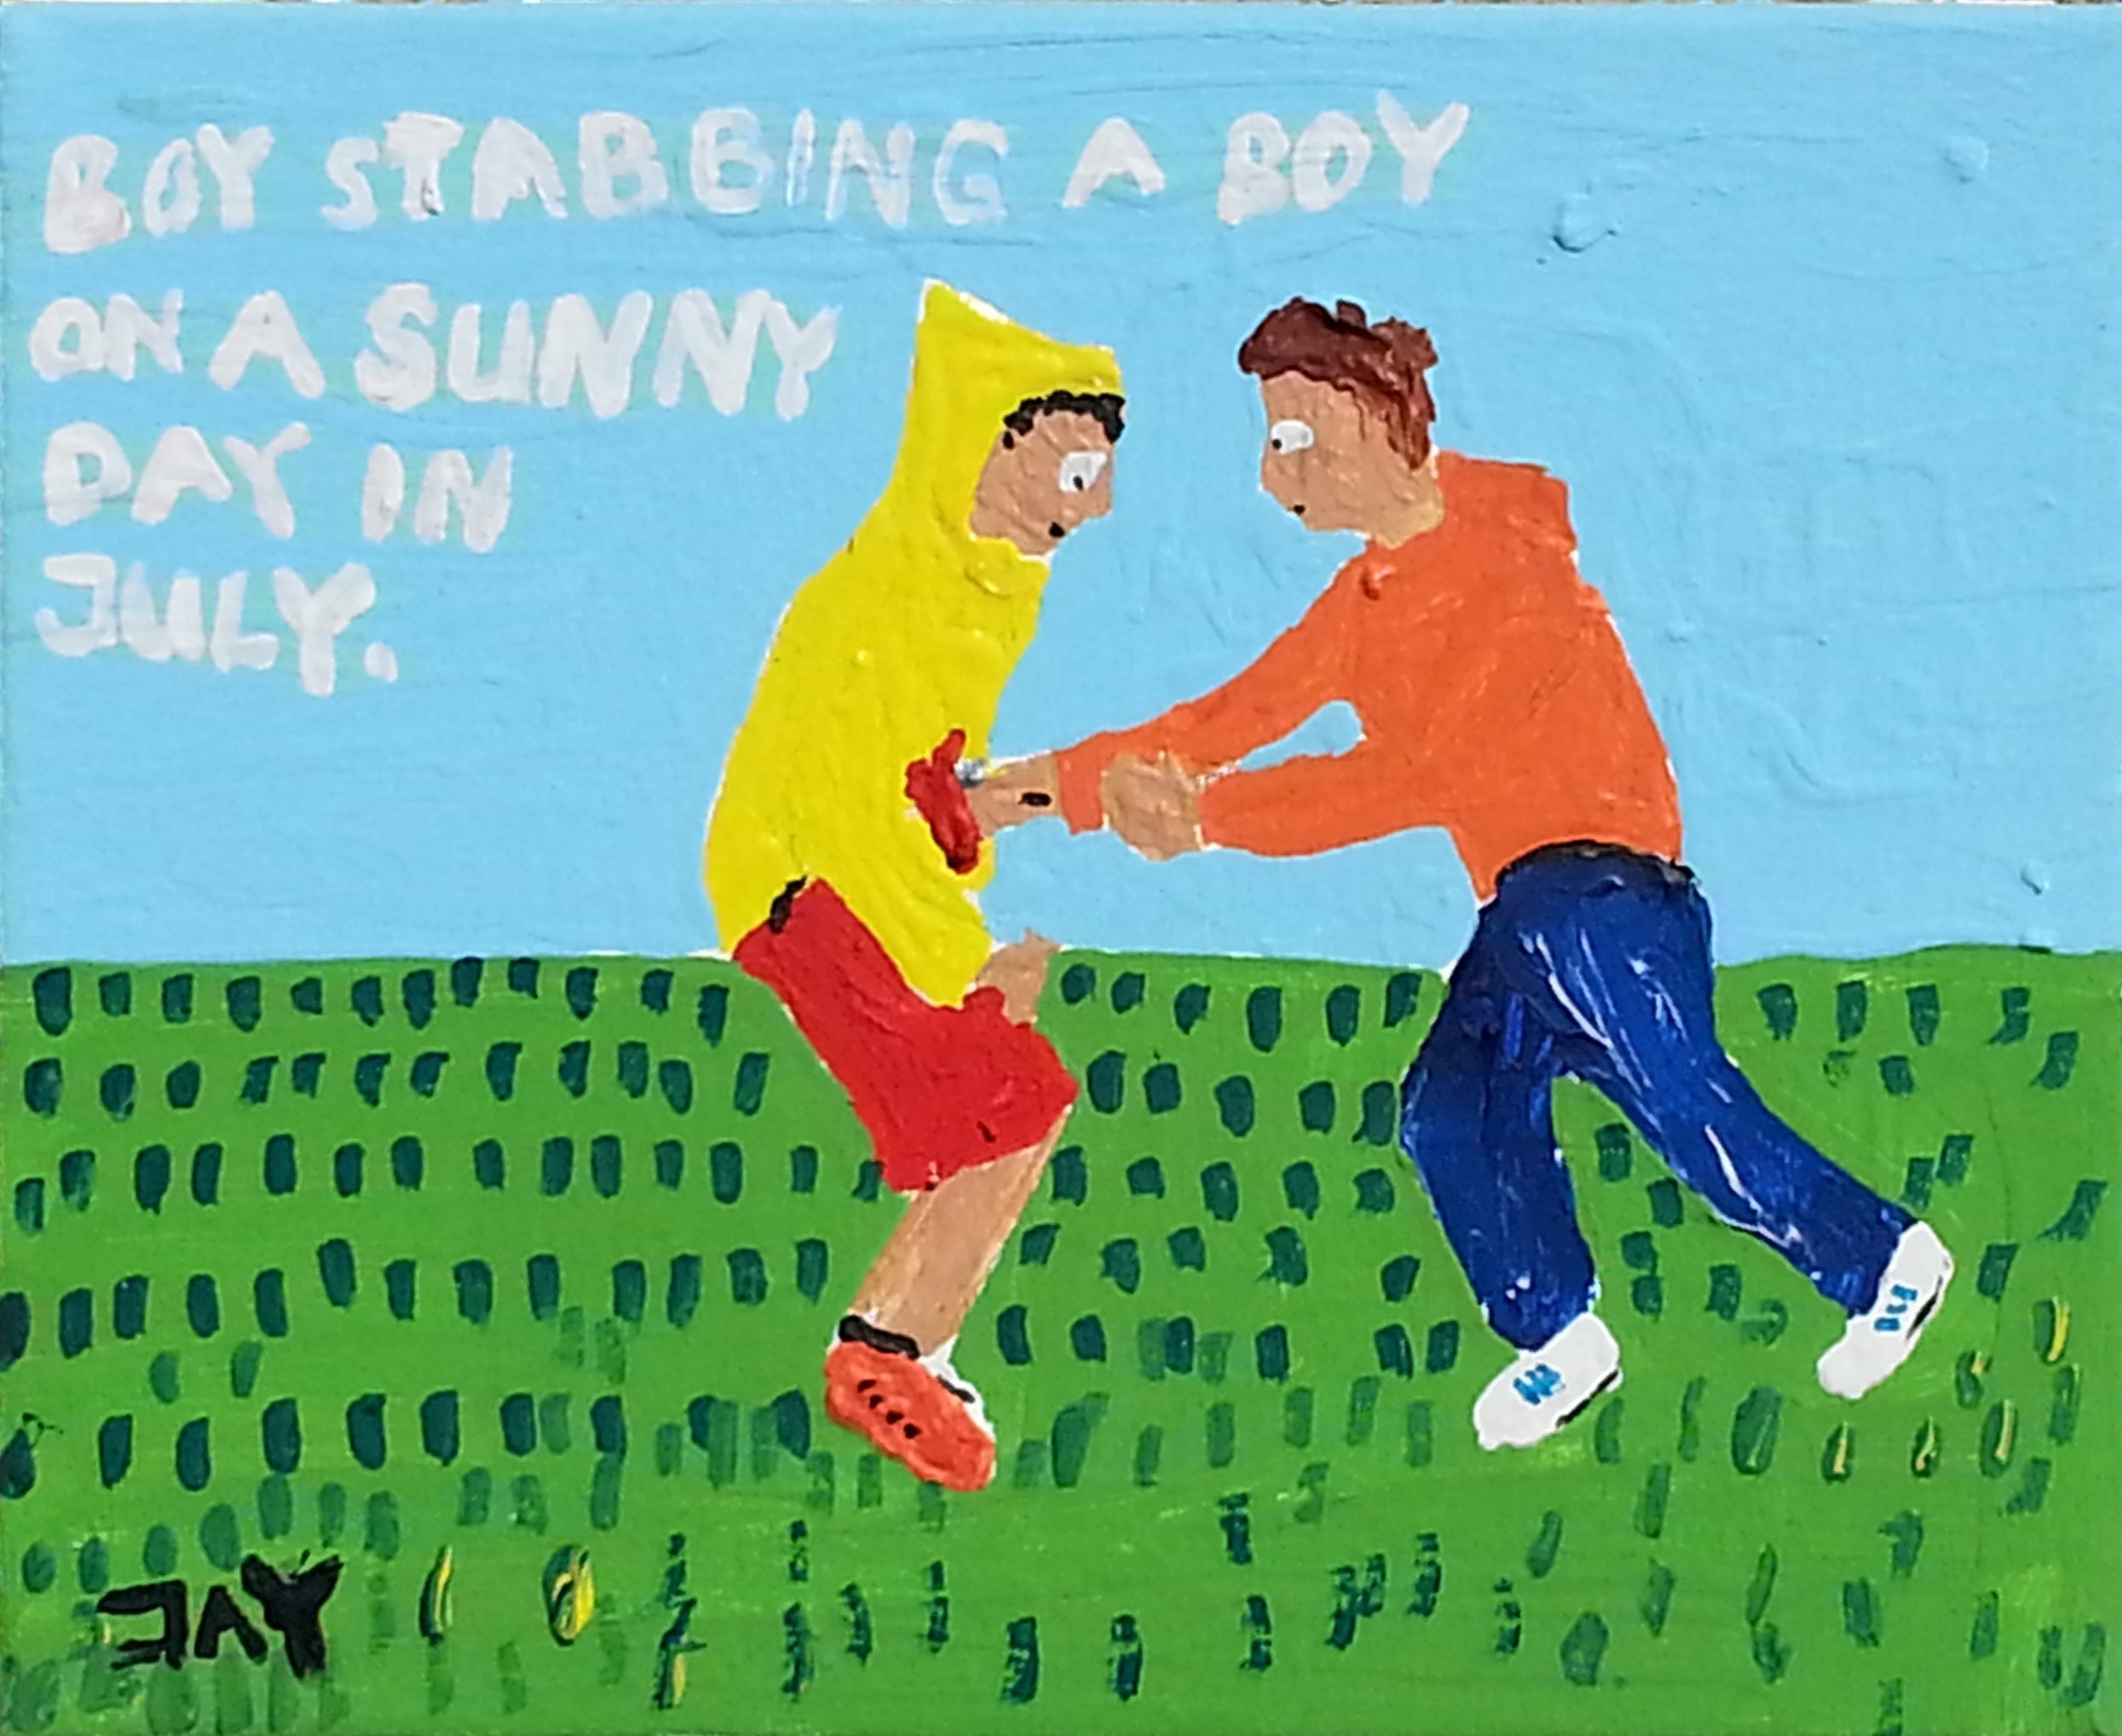 Bad Painting number 05: Boy stabbing a boy on a sunny day in July, original Human Figure Acrylic Painting by Jay Rechsteiner